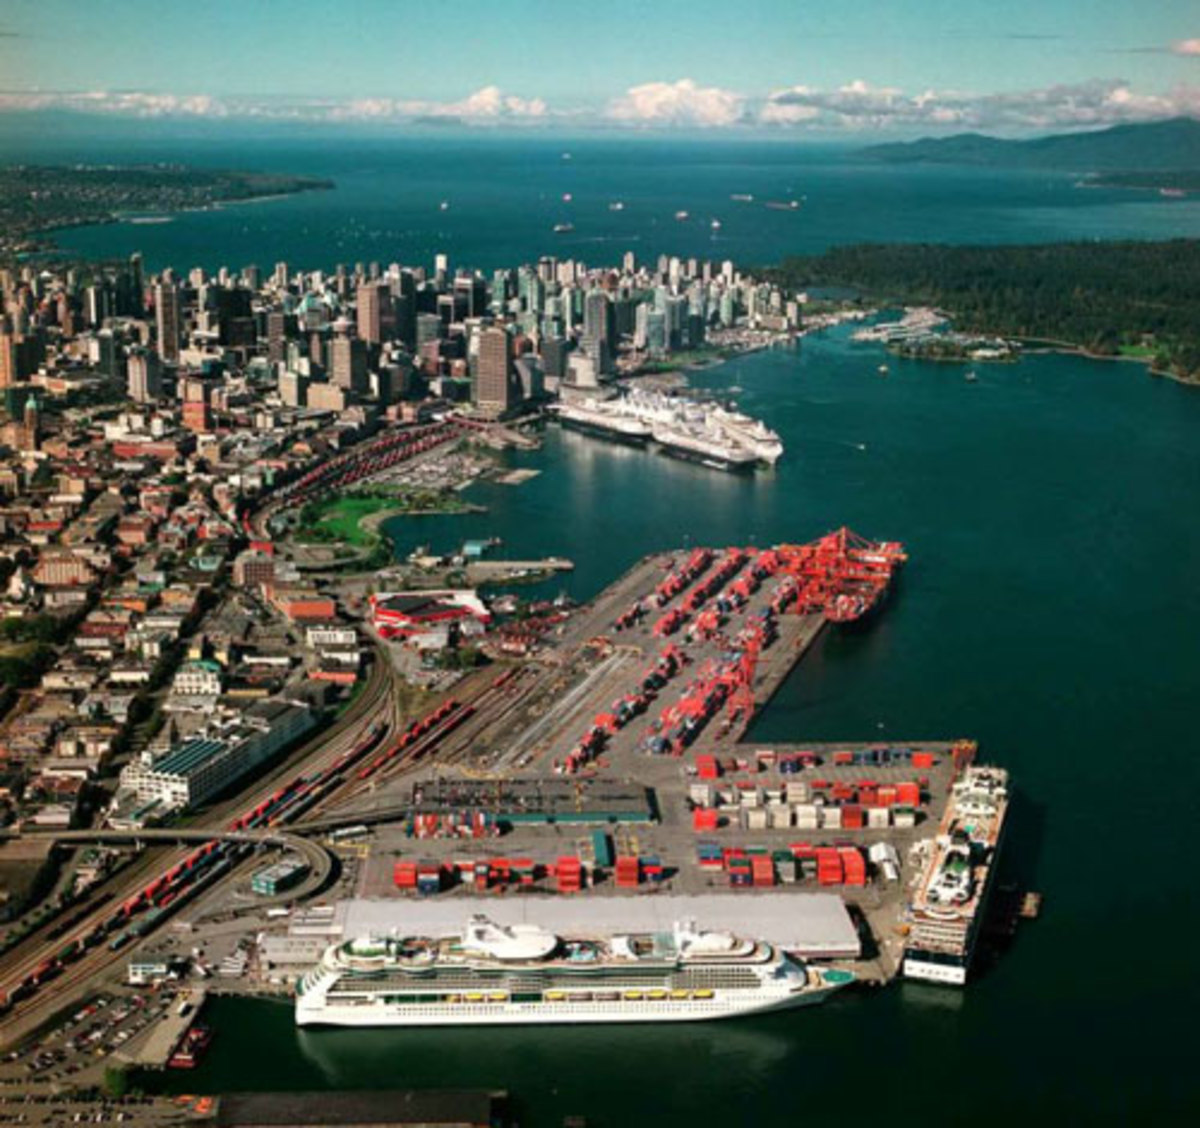 Vancouver Cruise Terminals